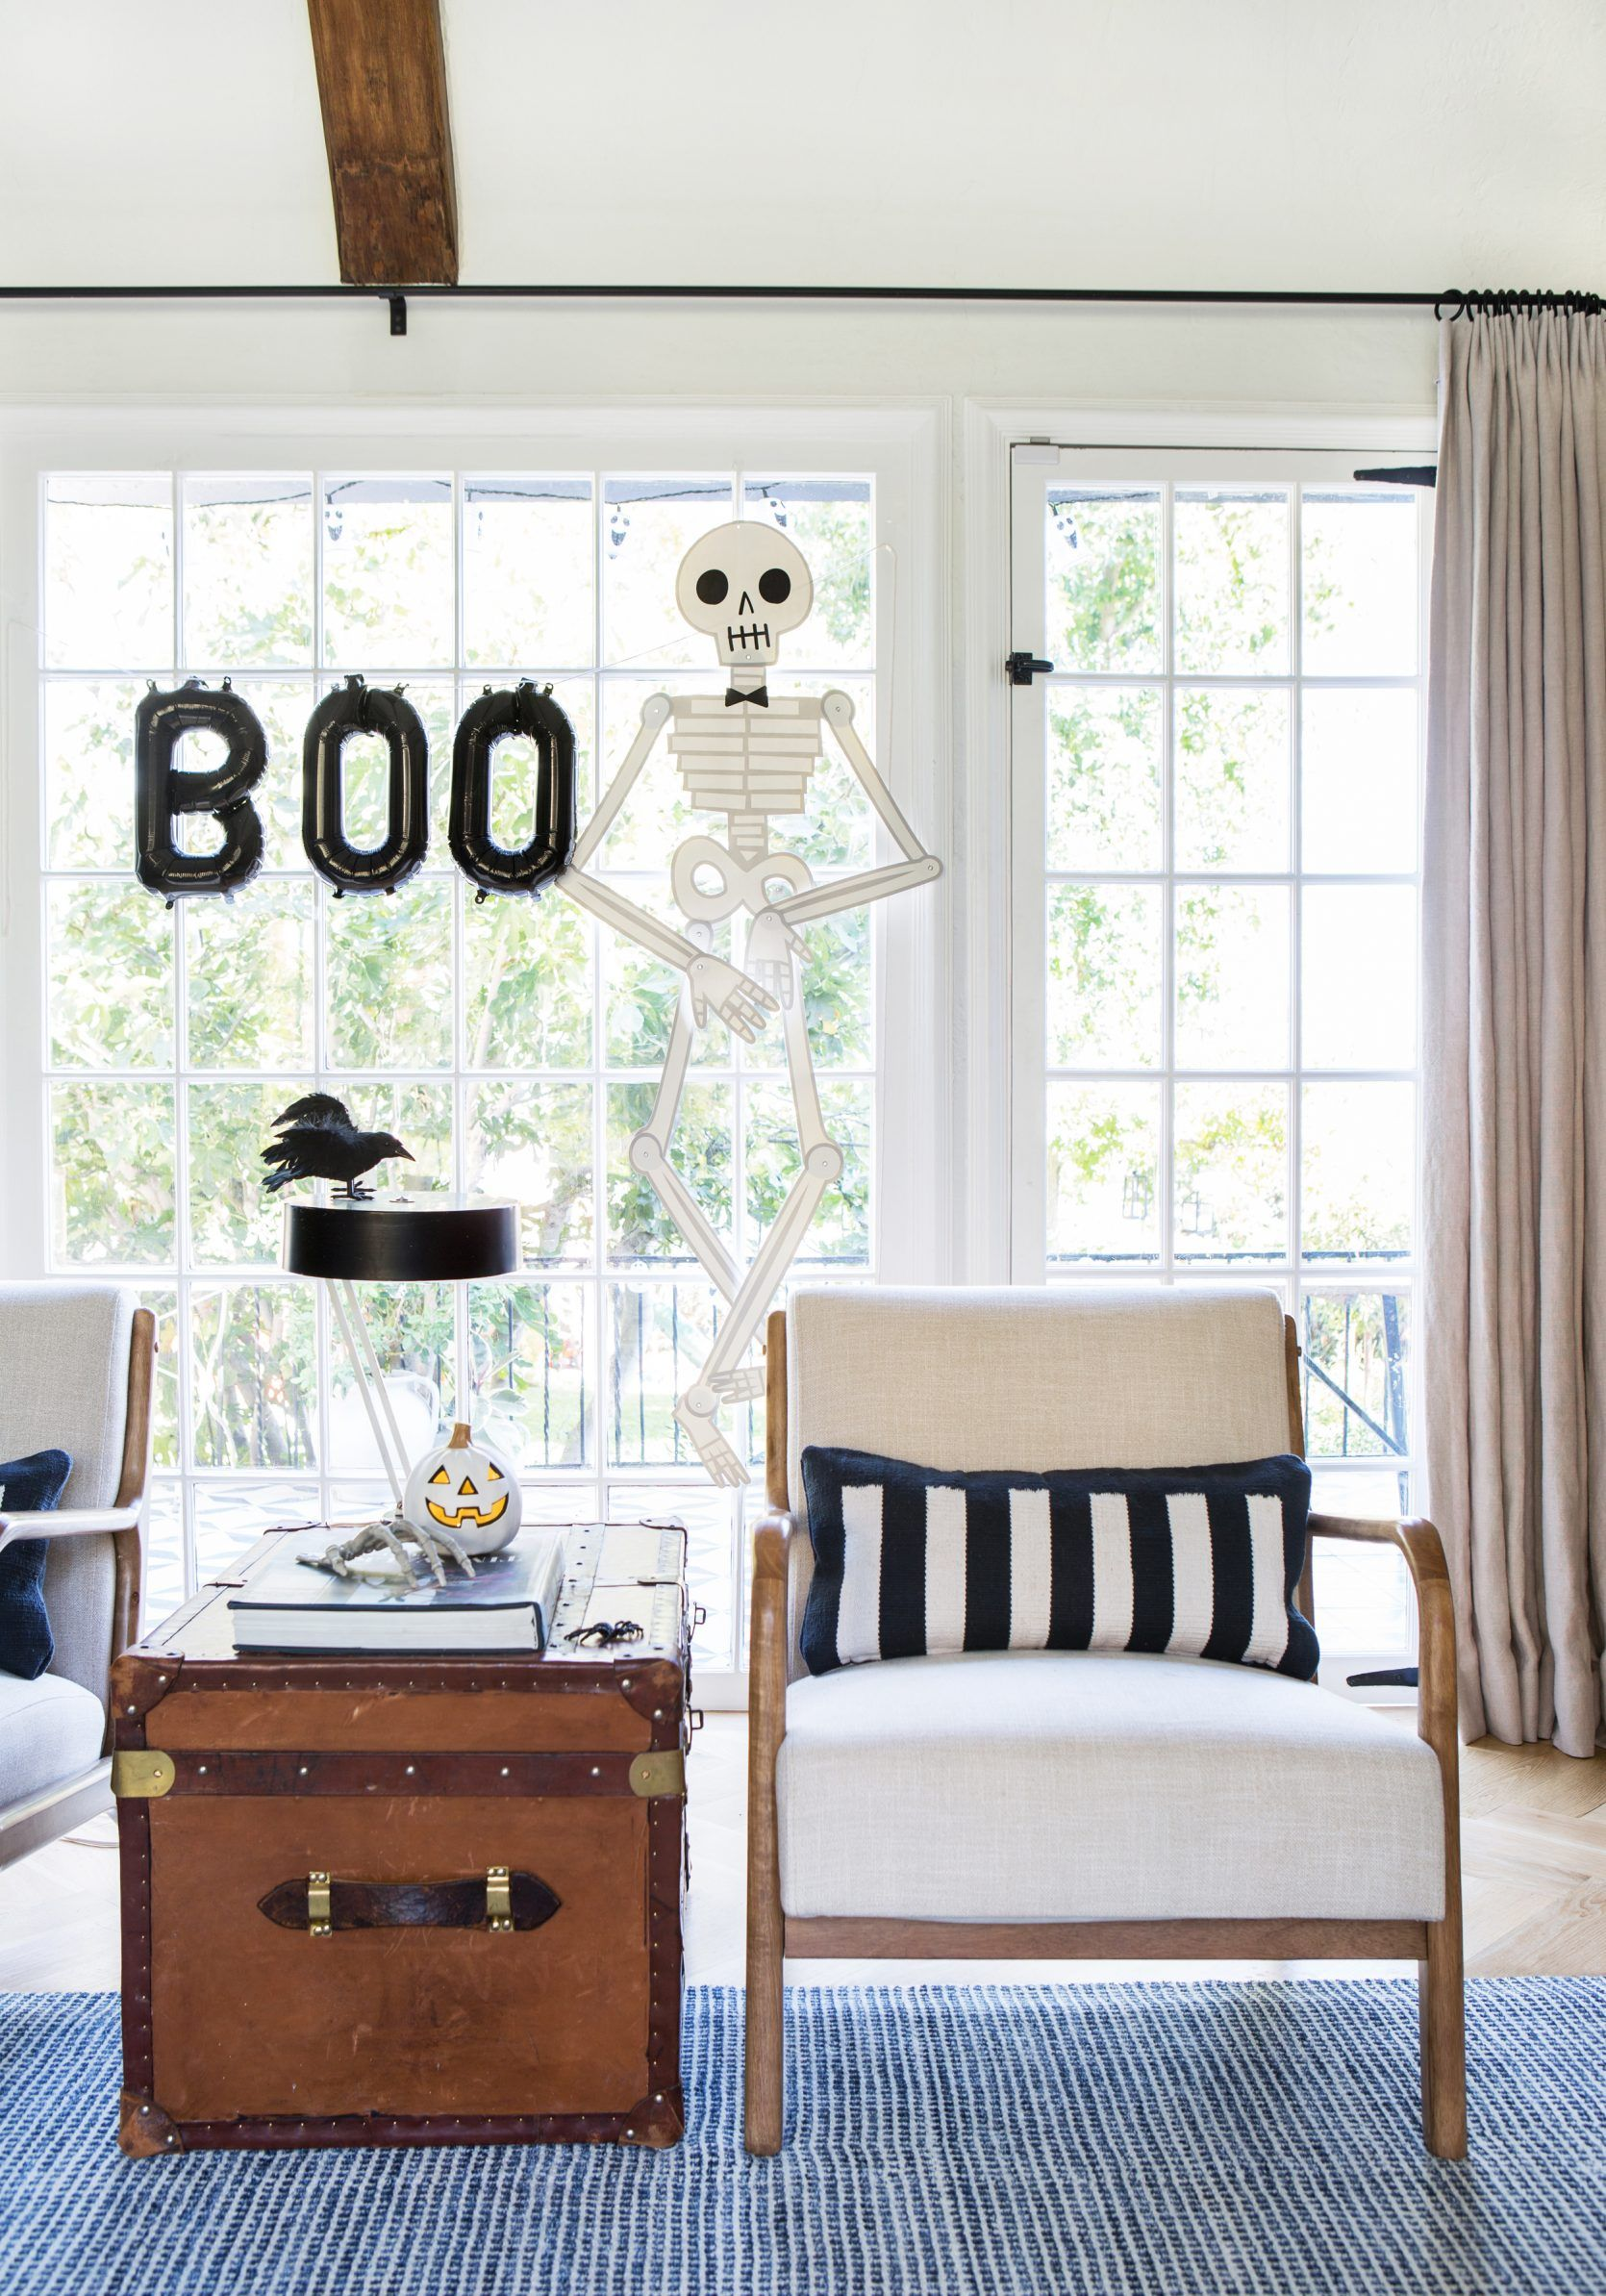 10 Last Minute and Affordable Halloween Decor Ideas